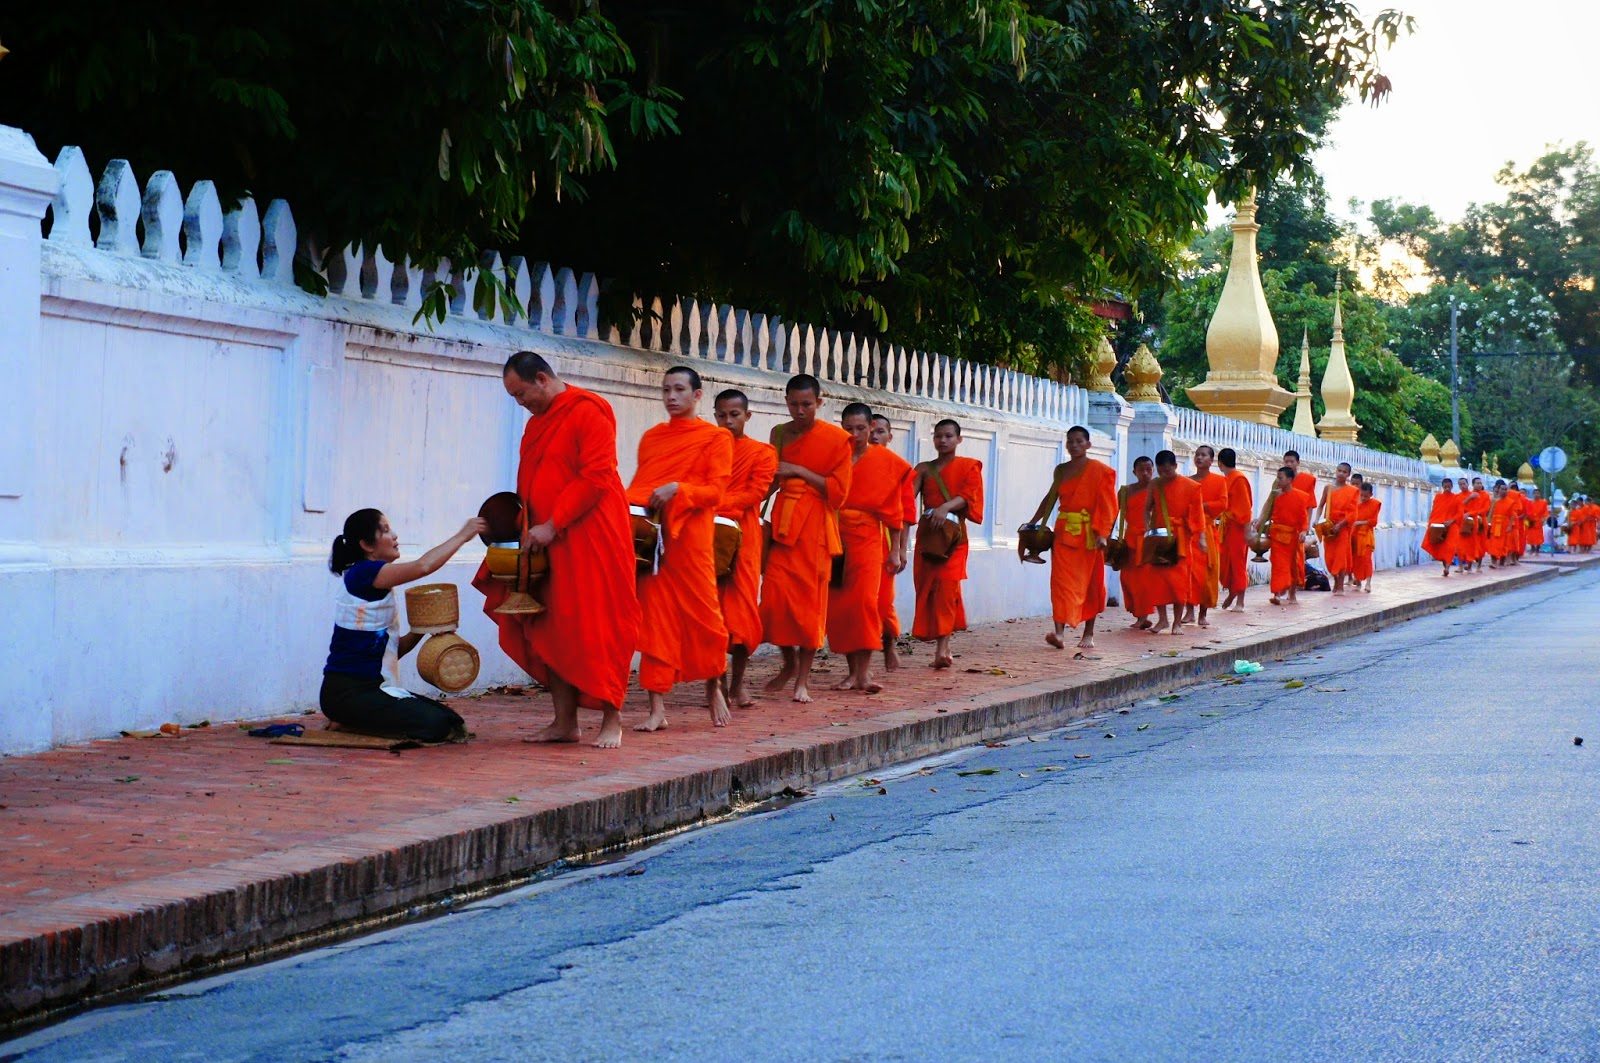 Luang Prabang - Monks receiving offerings from locals